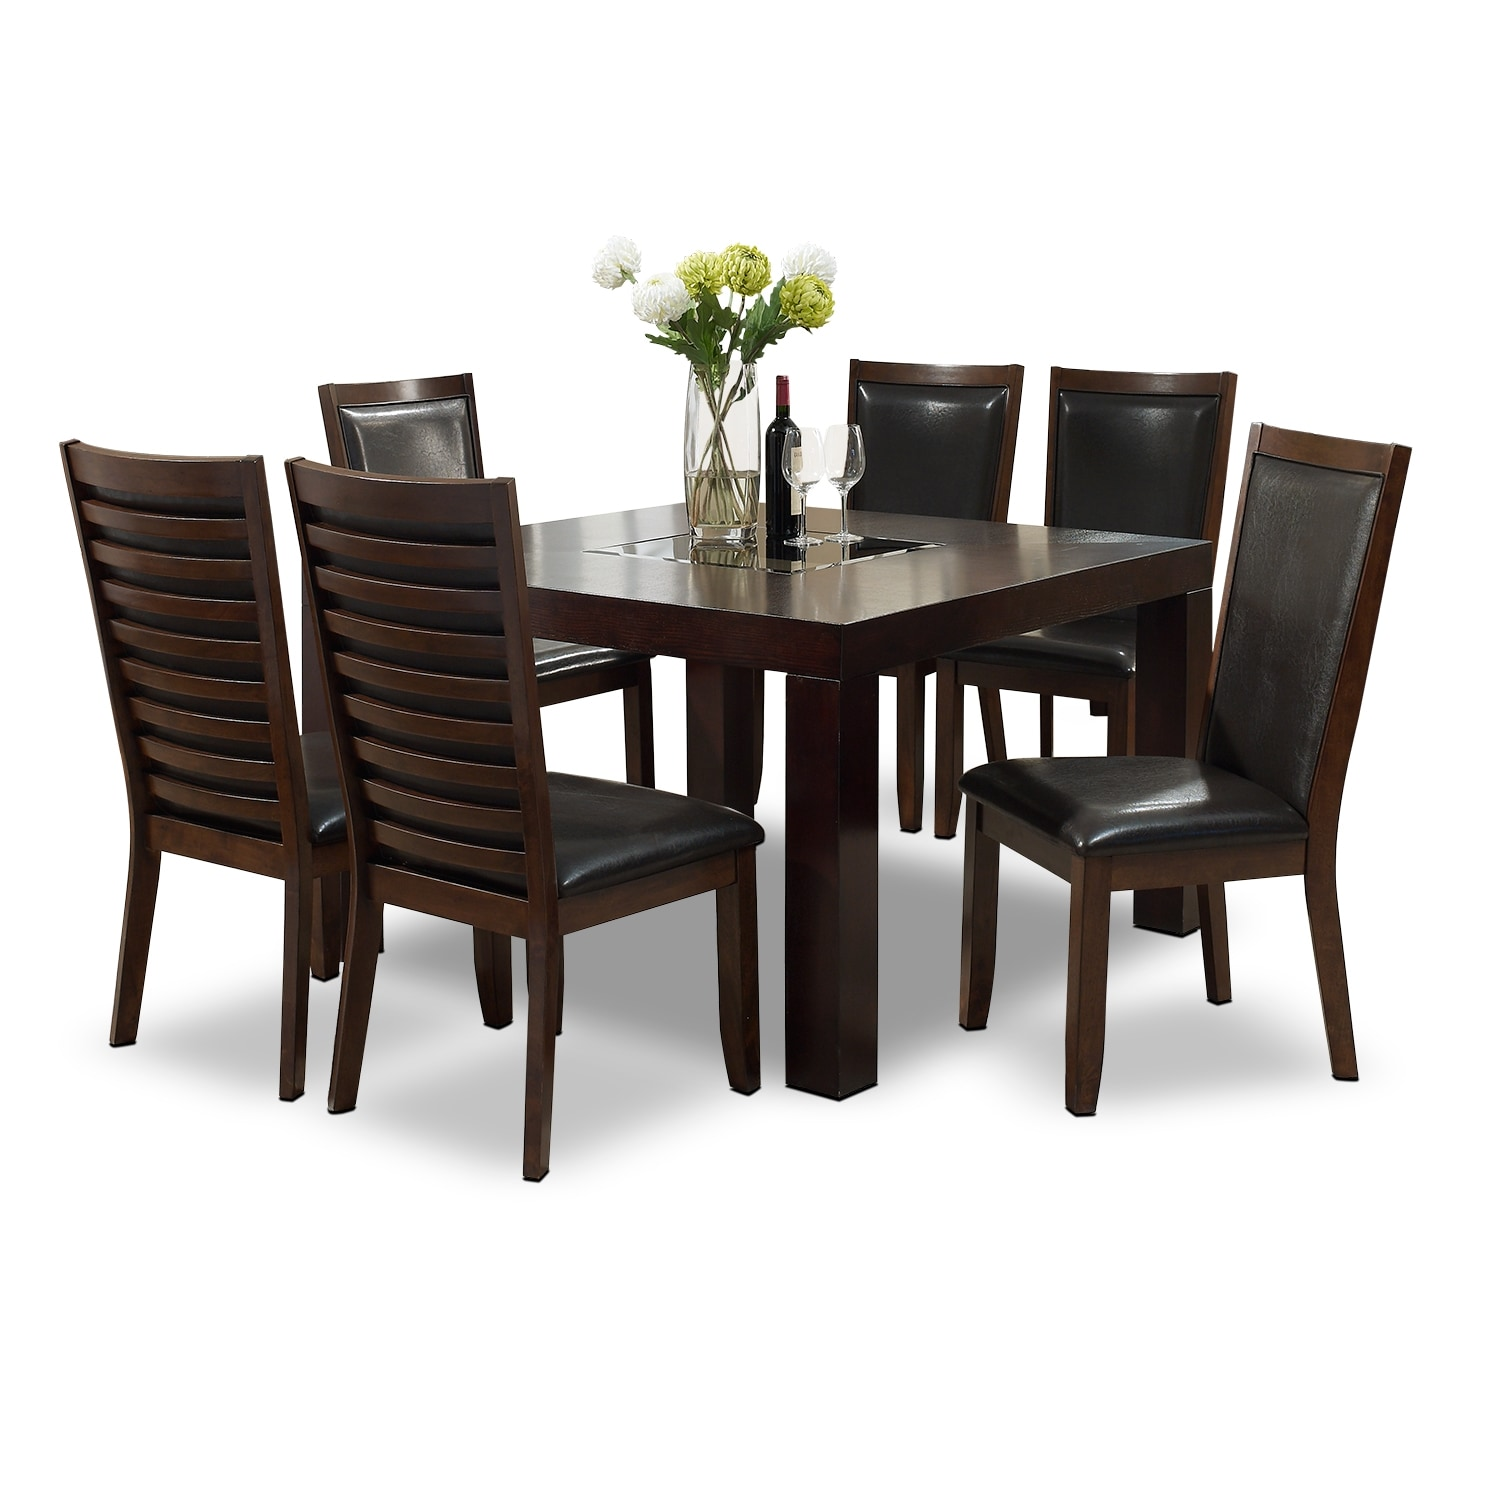 "[Tango Paragon II 7 Pc. Dinette with 50x50"" Table - Merlot and Brown]"